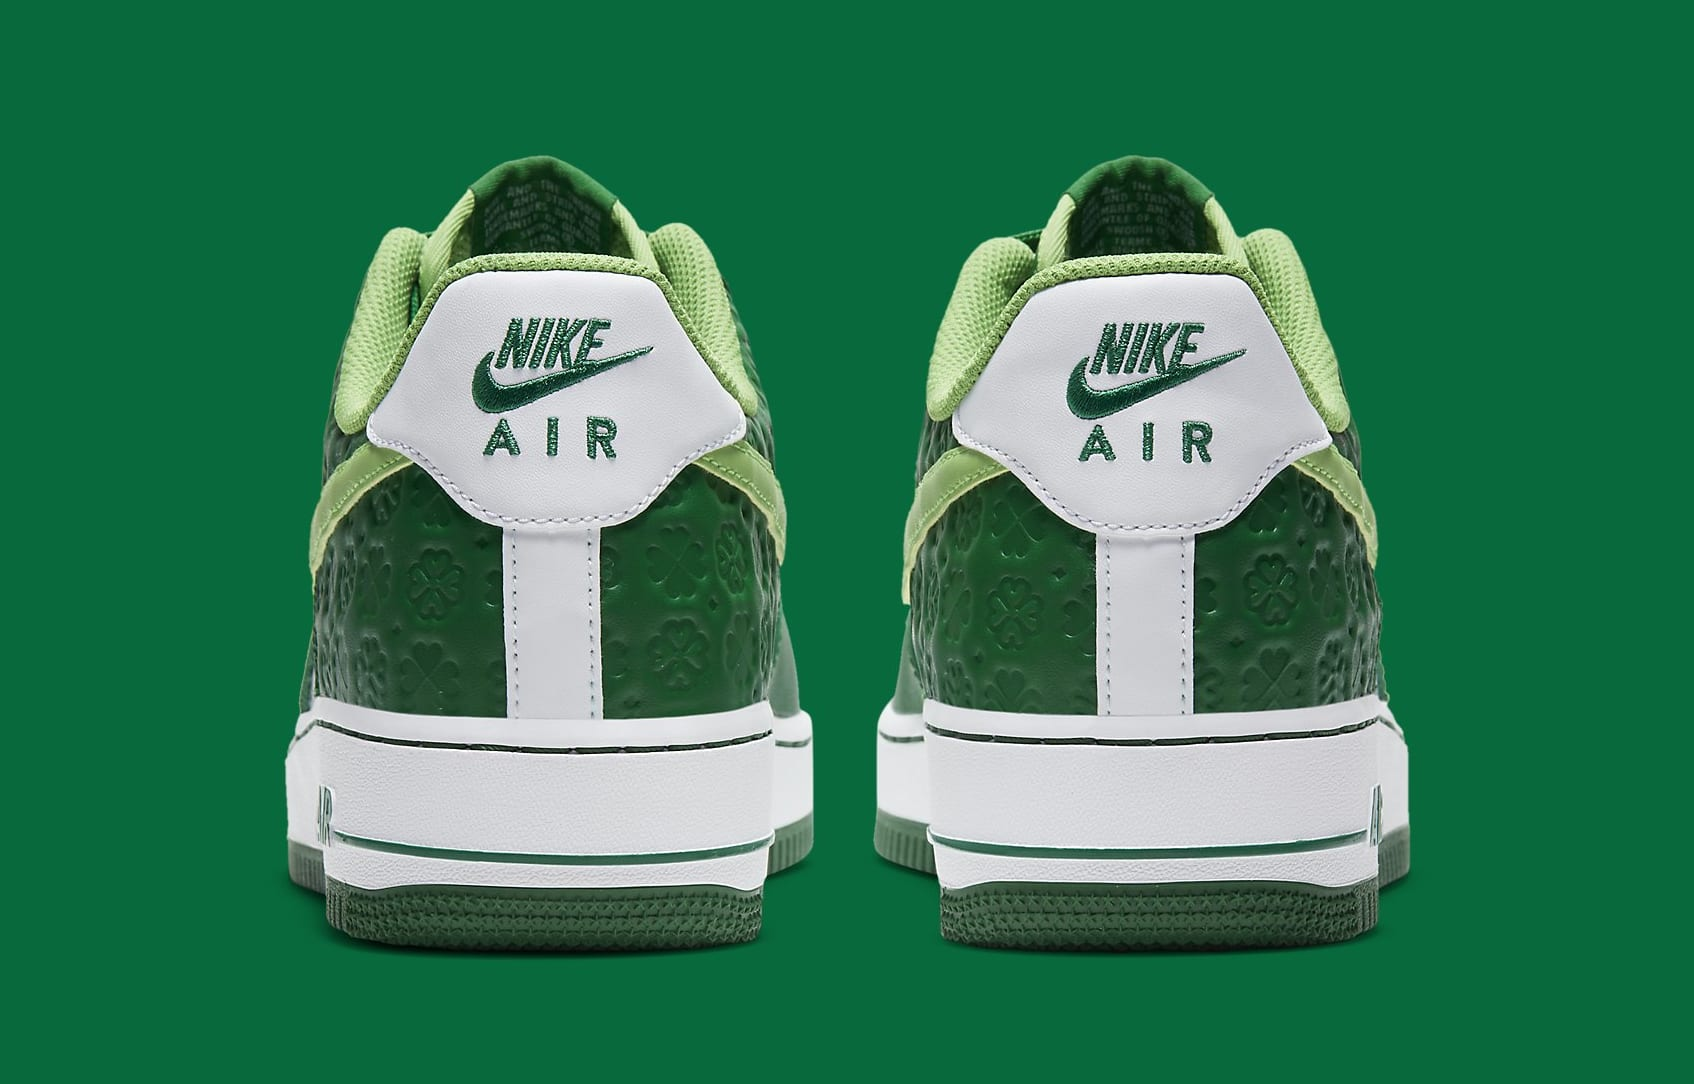 Nike Air Force 1 Low 'St. Patrick's Day' DD8458-300 Heel